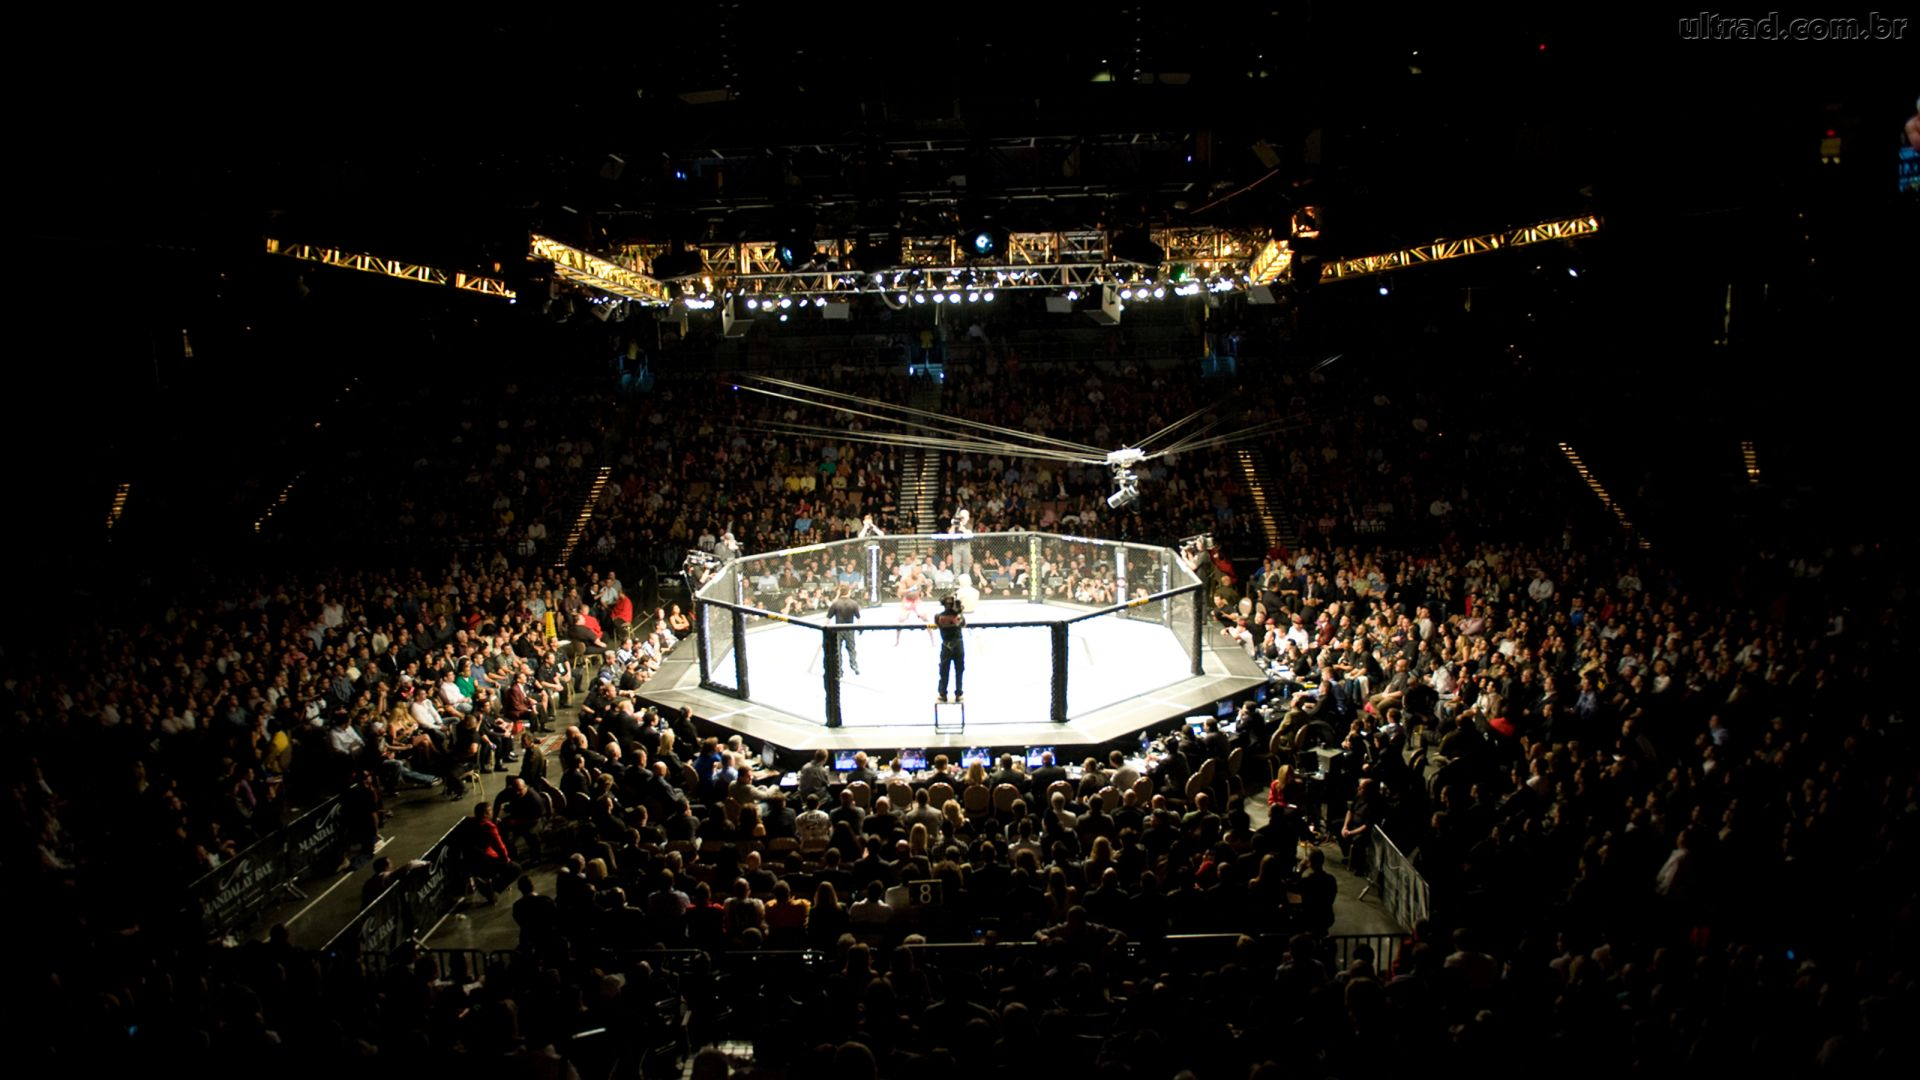 ufc octagon ufc octagon wallpapers papel de parede mma mma wallpaper 1920x1080